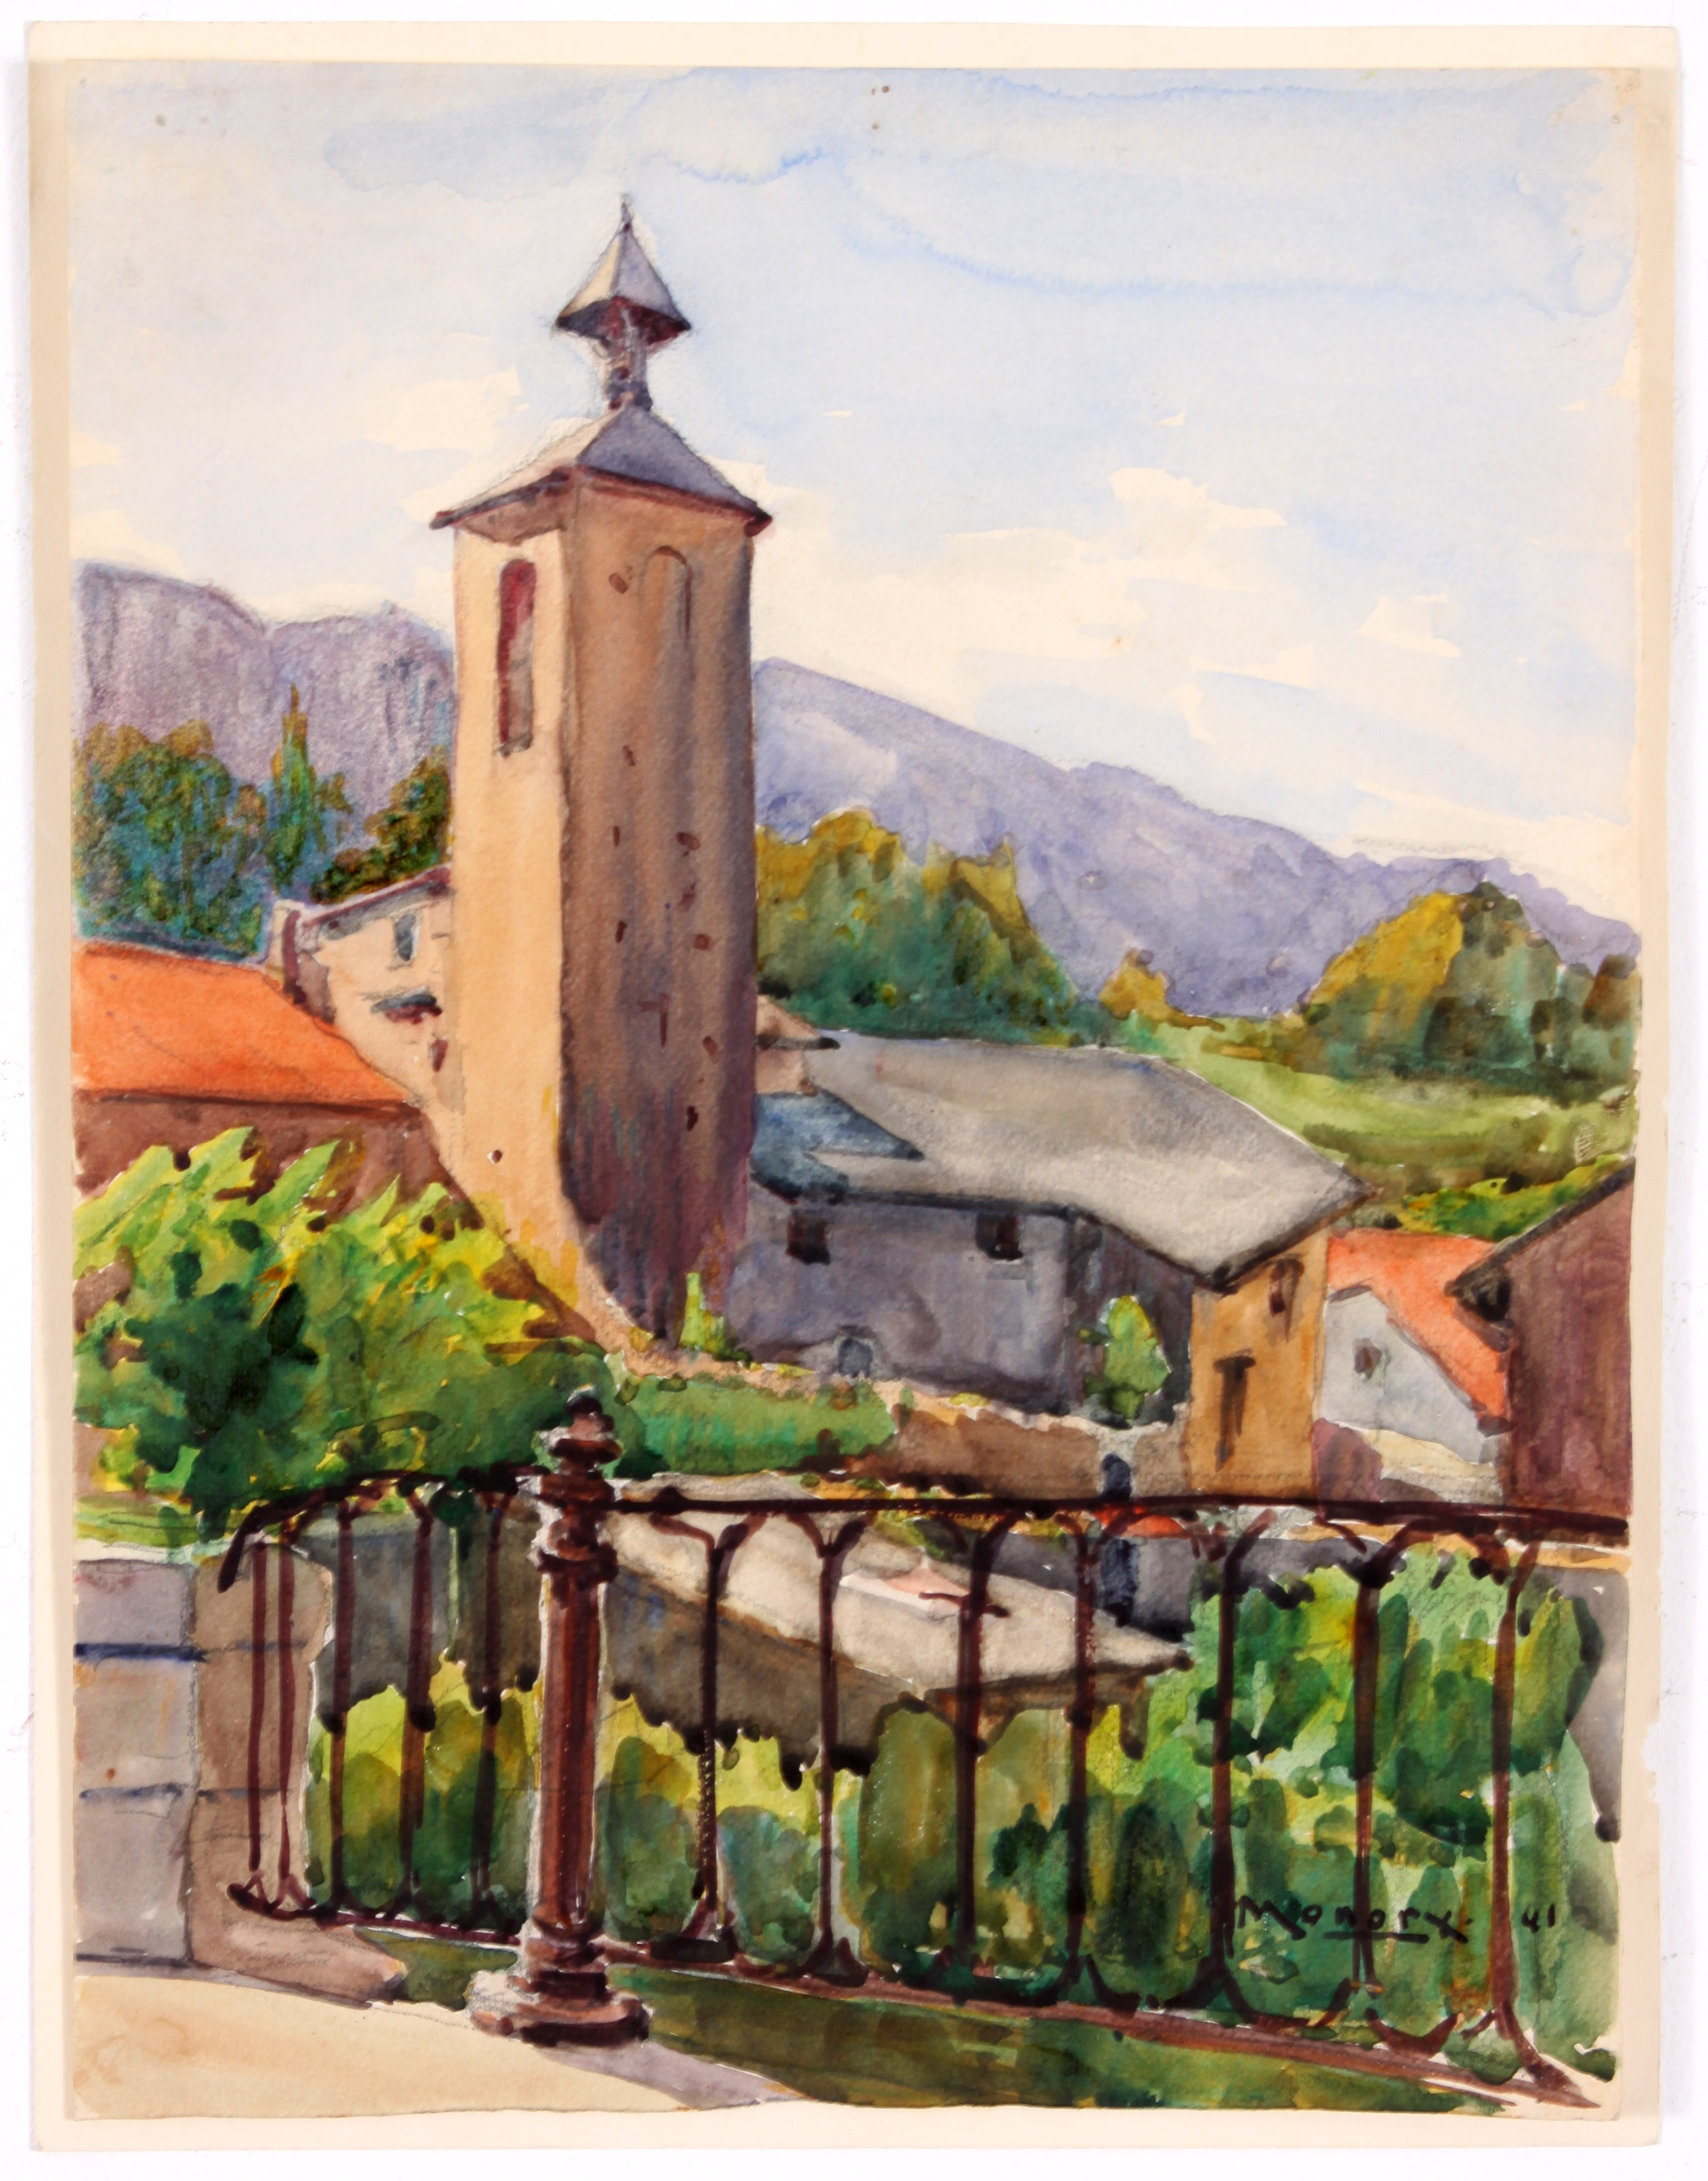 Original c. 1940s Watercolor by Raoul Monory